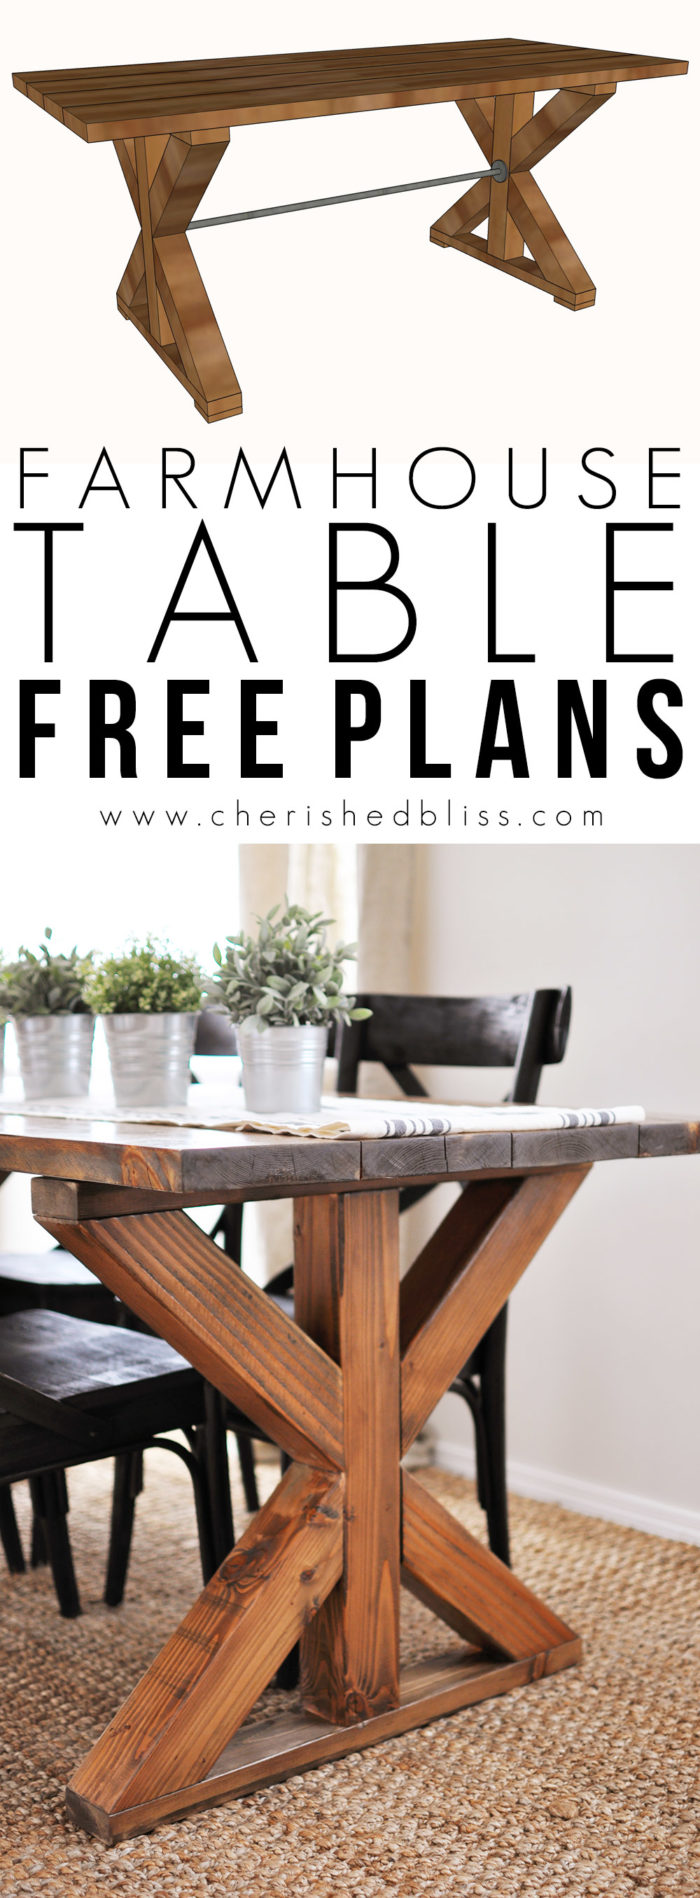 x brace farmhouse table free plans cherished bliss dining room table plans free pdf plans contemporary